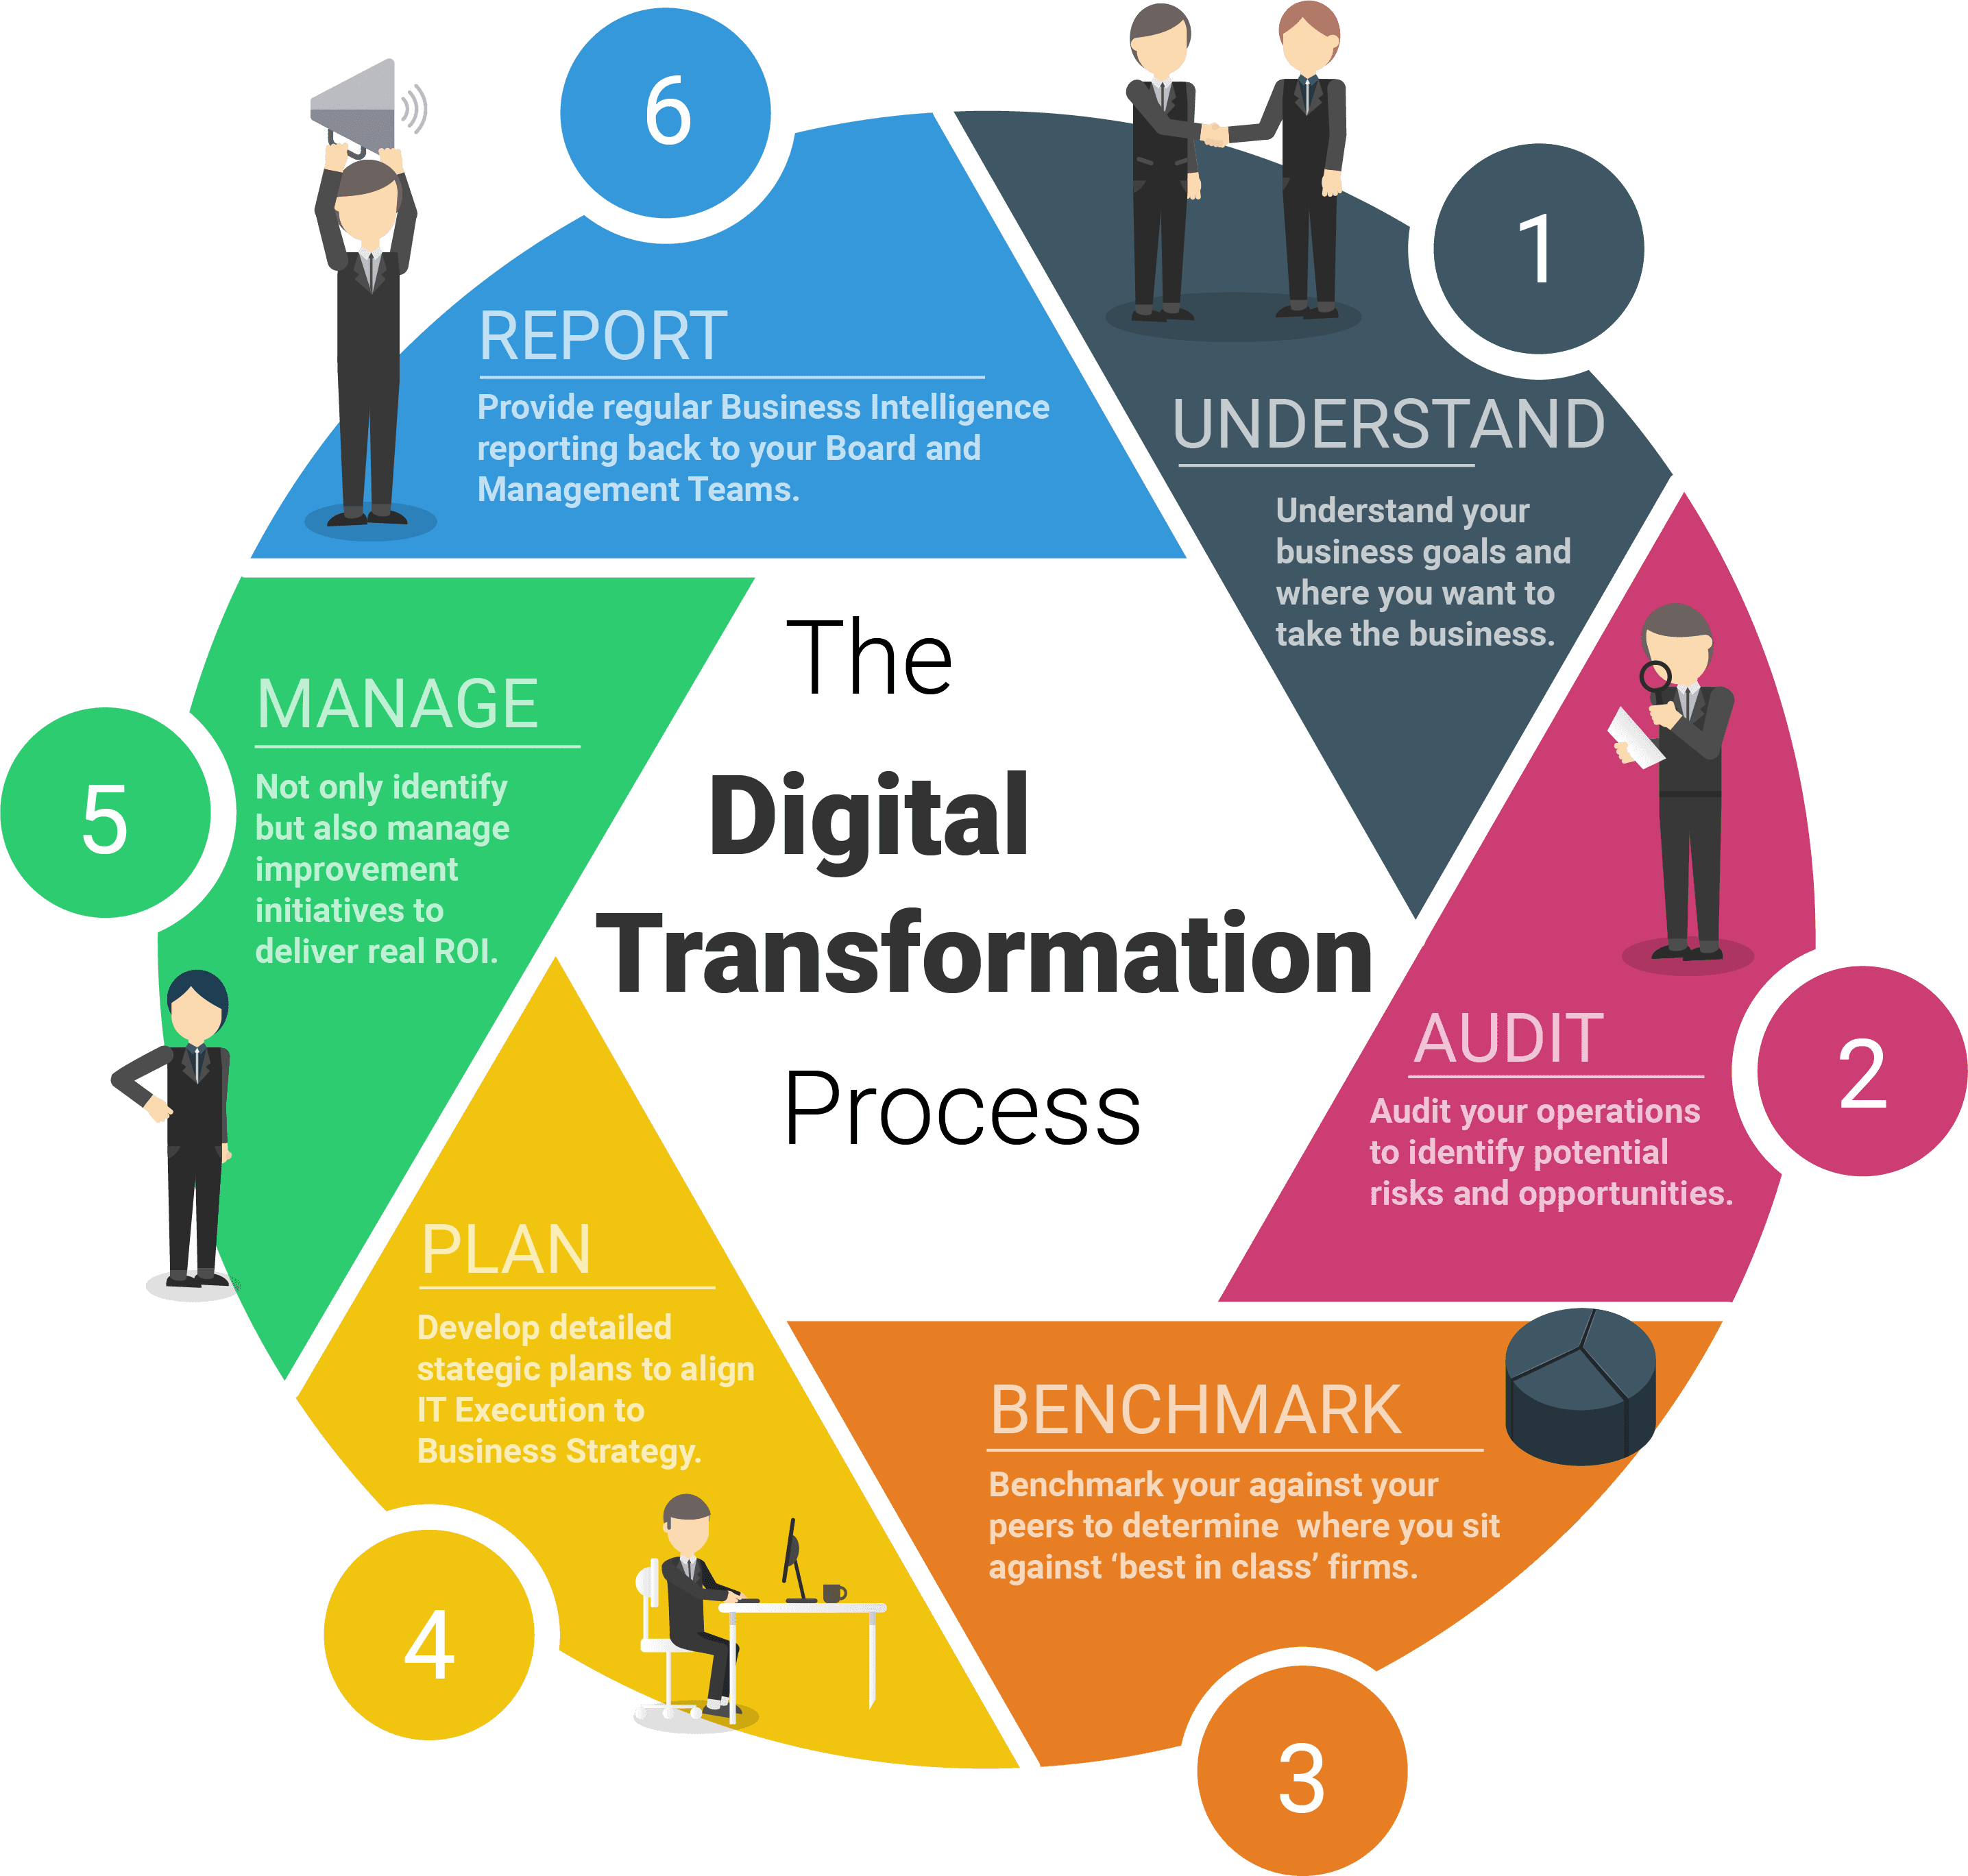 The Digital Transformation Process